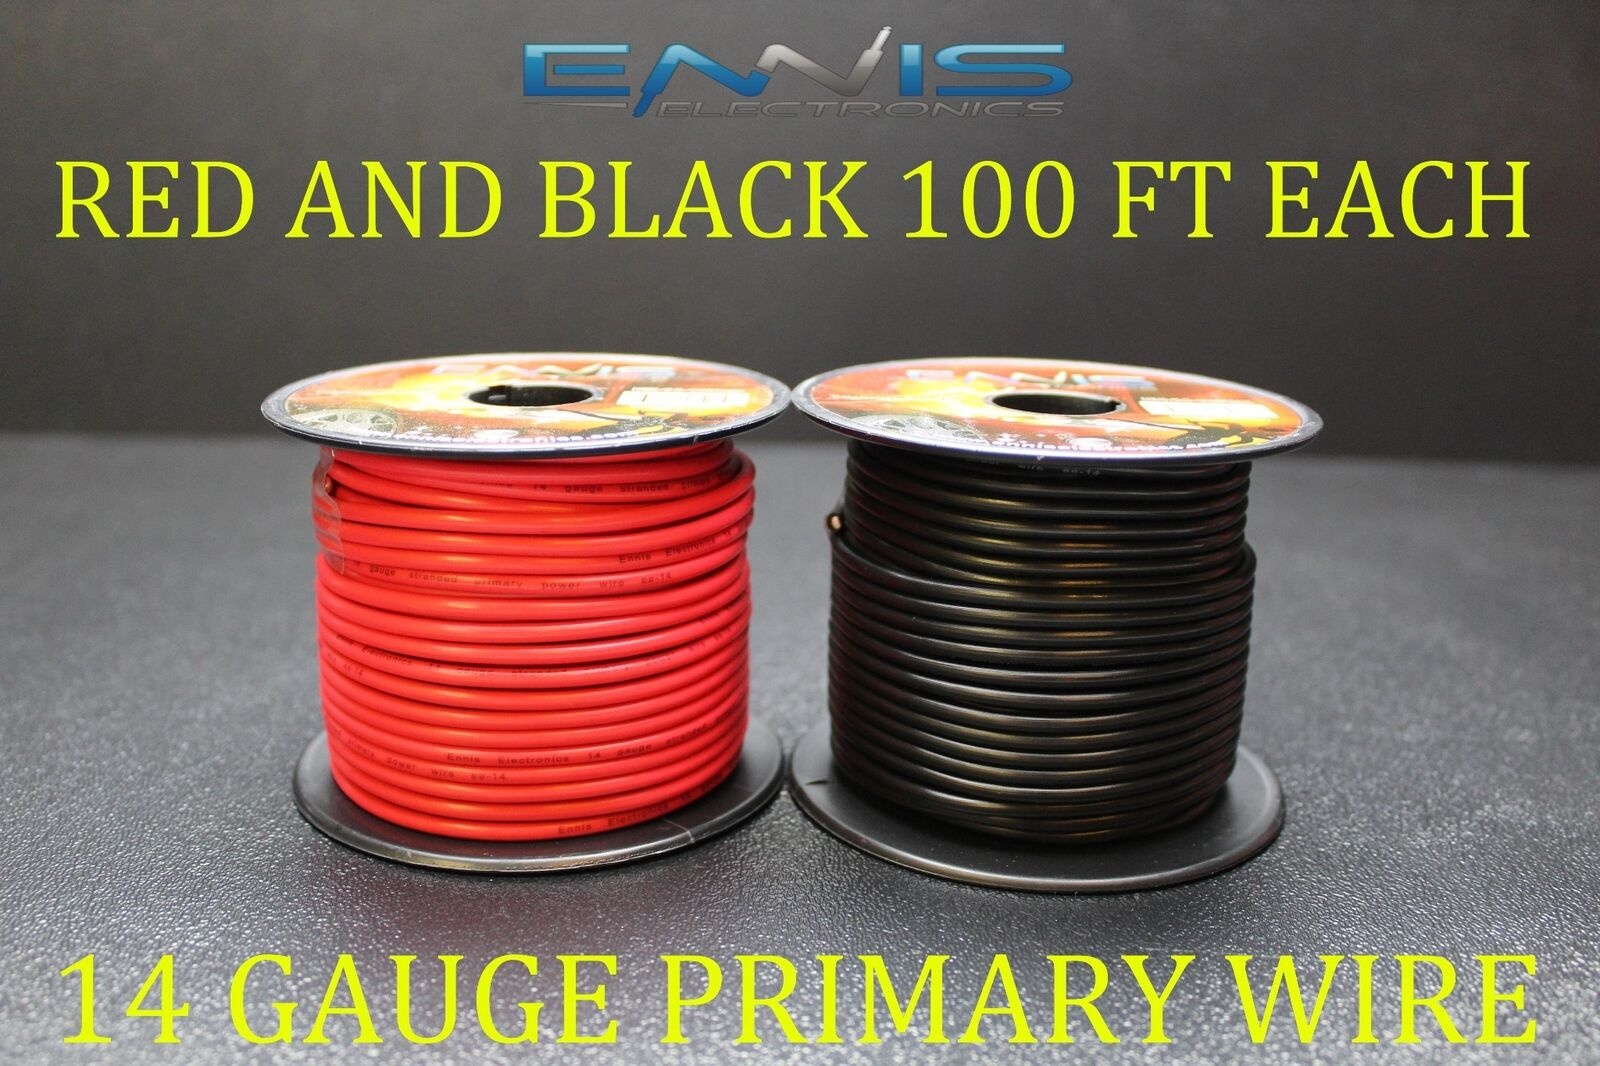 14 GAUGE WIRE 200 Ft Ennis Electronics 100 Red 100 Black Primary Awg ...